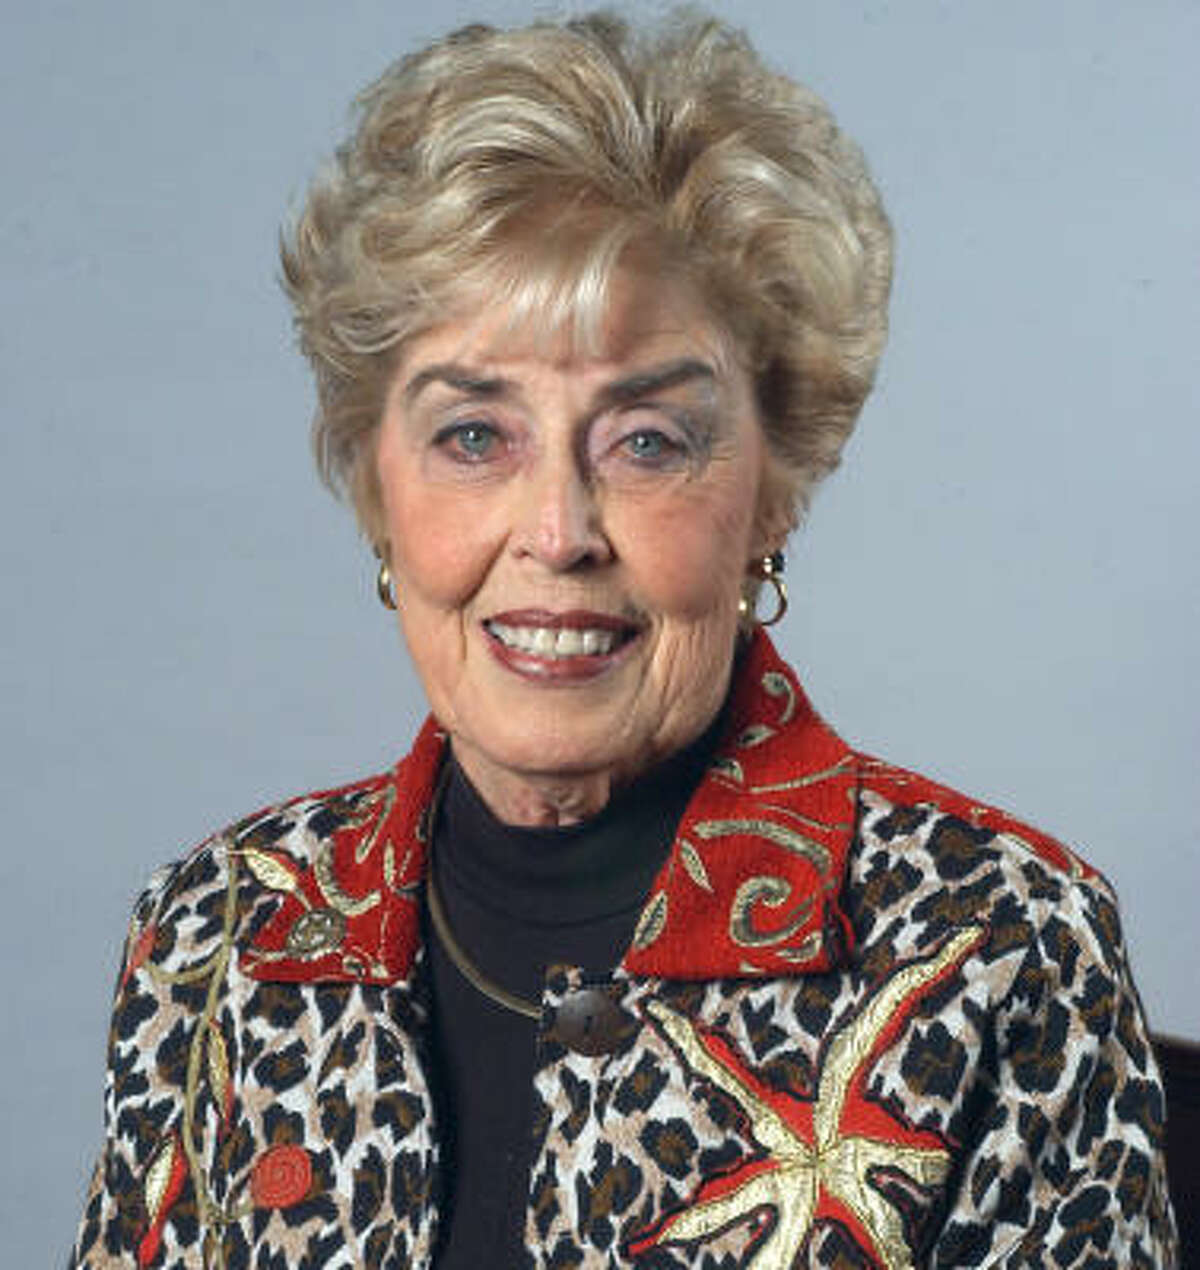 State Rep. Glenda Dawson, R-Pearland, died today. She was 65.